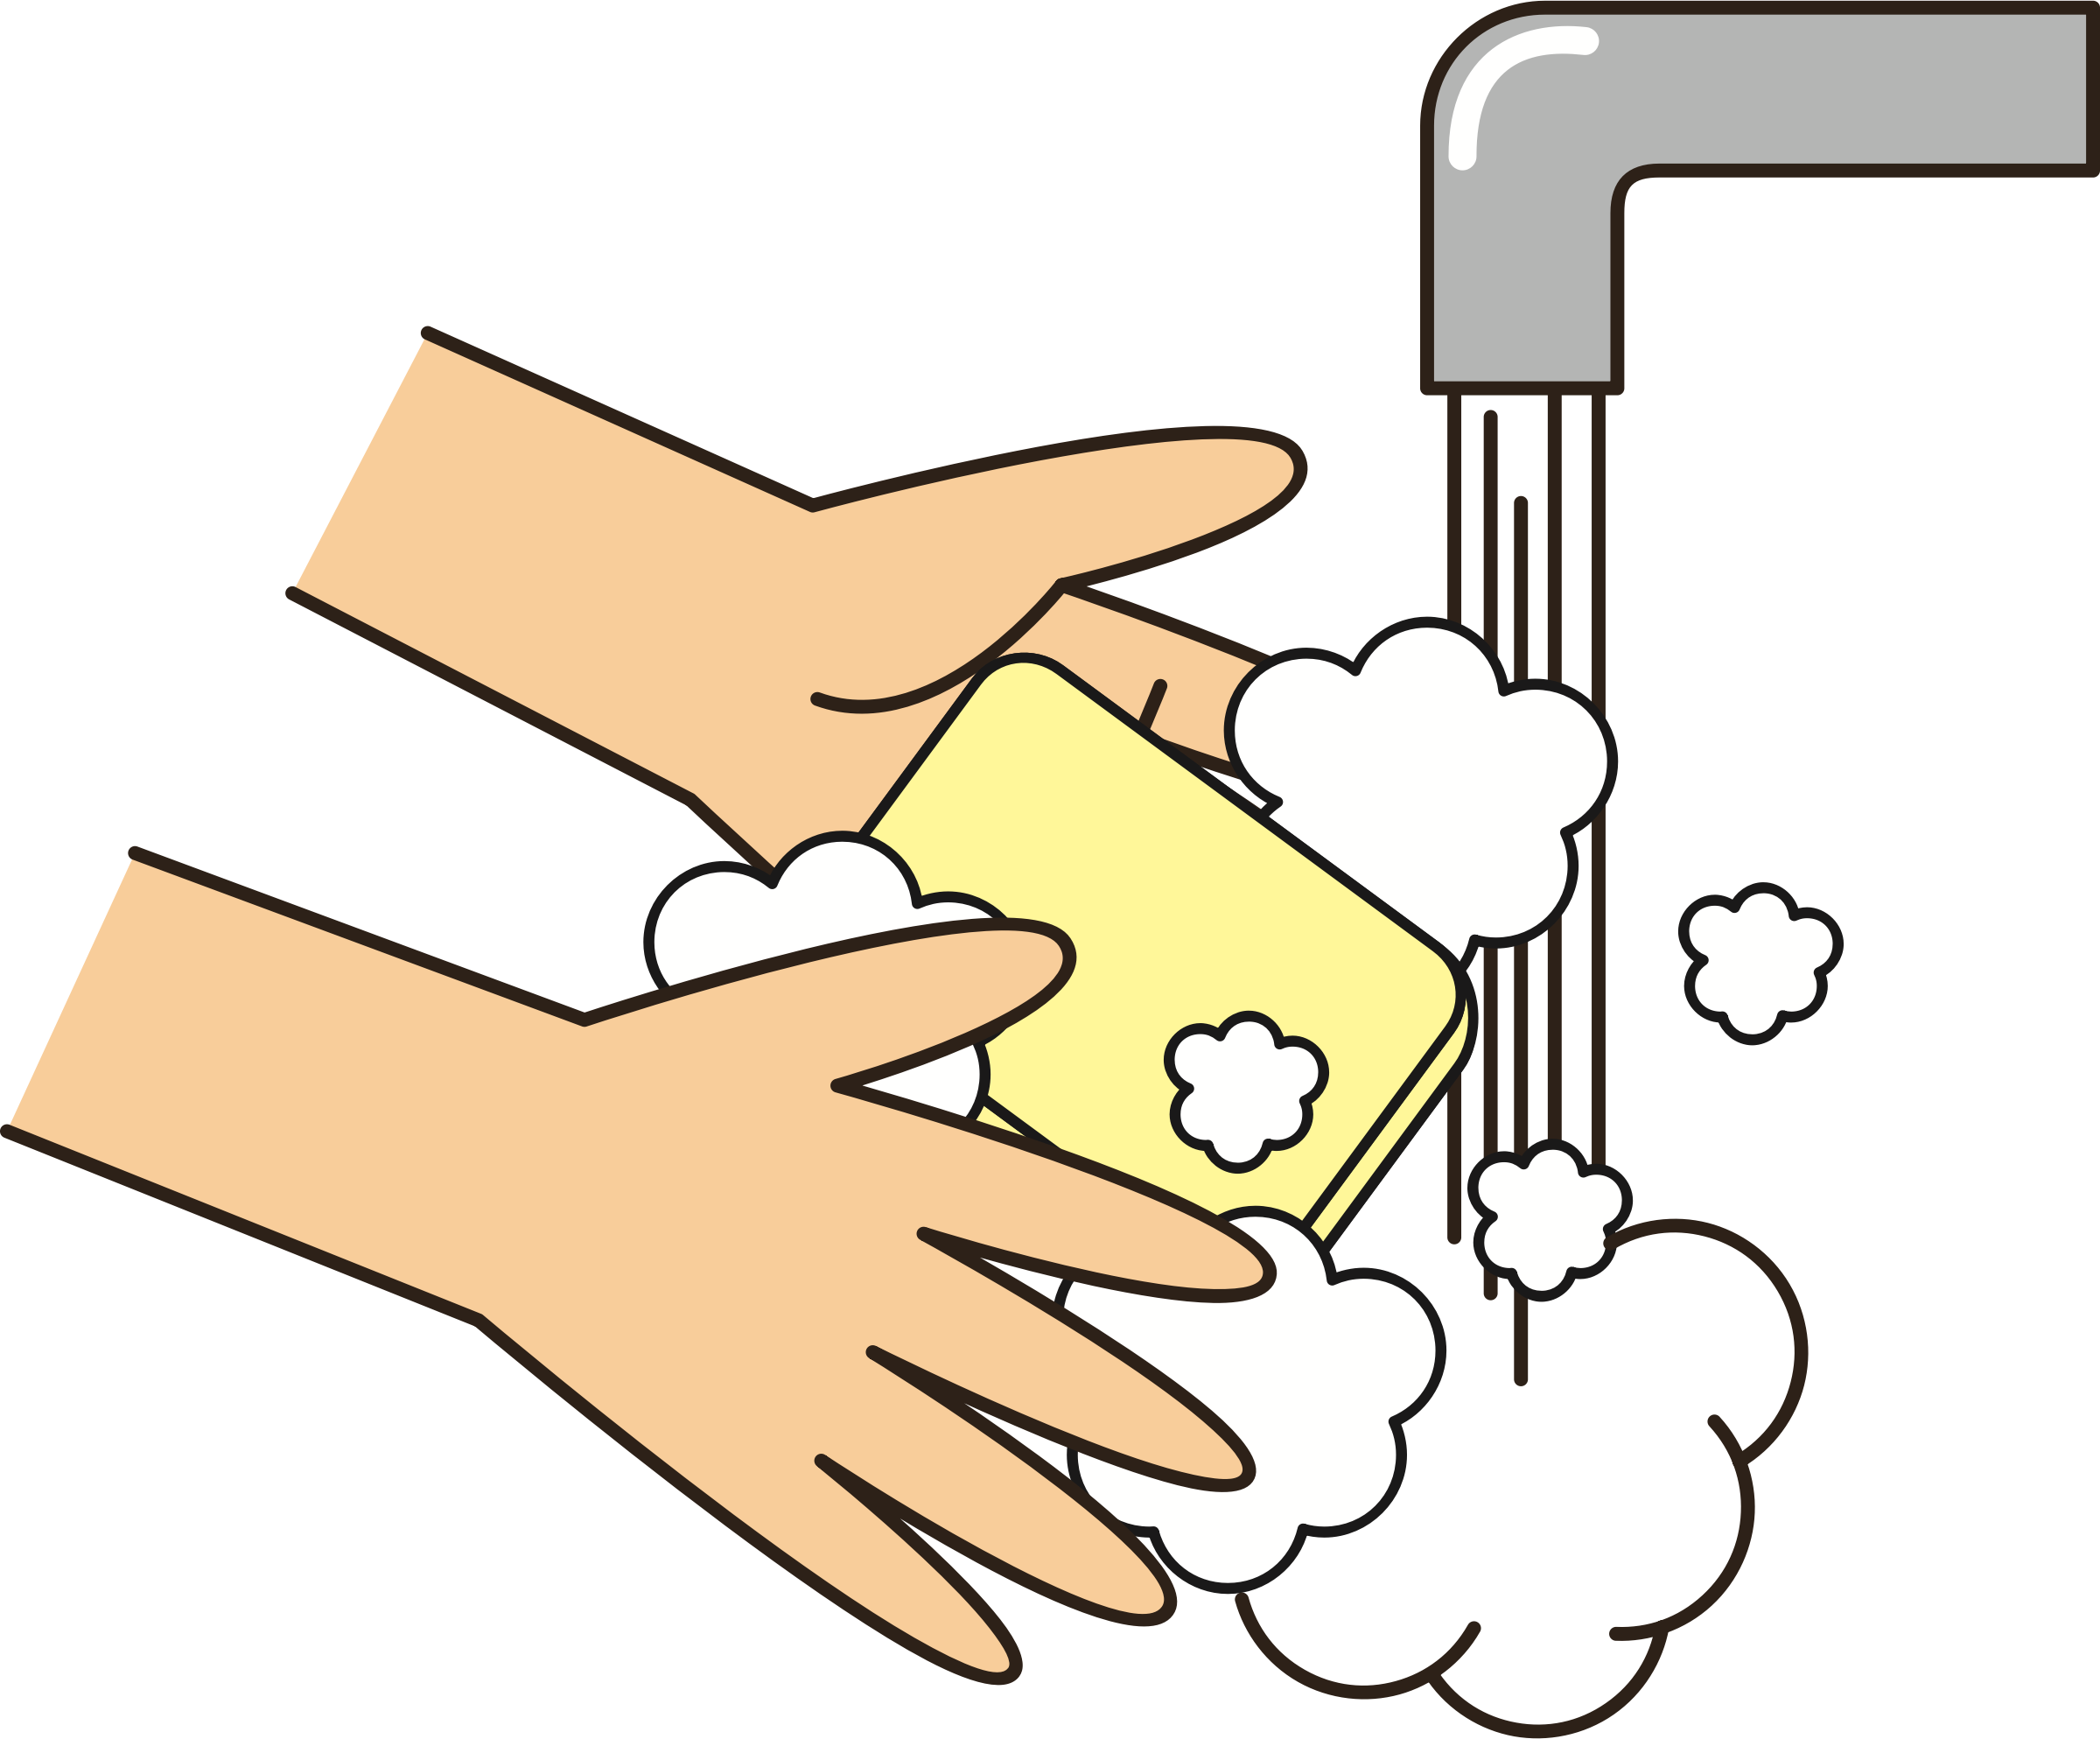 Washing hands png. Wash your with soap